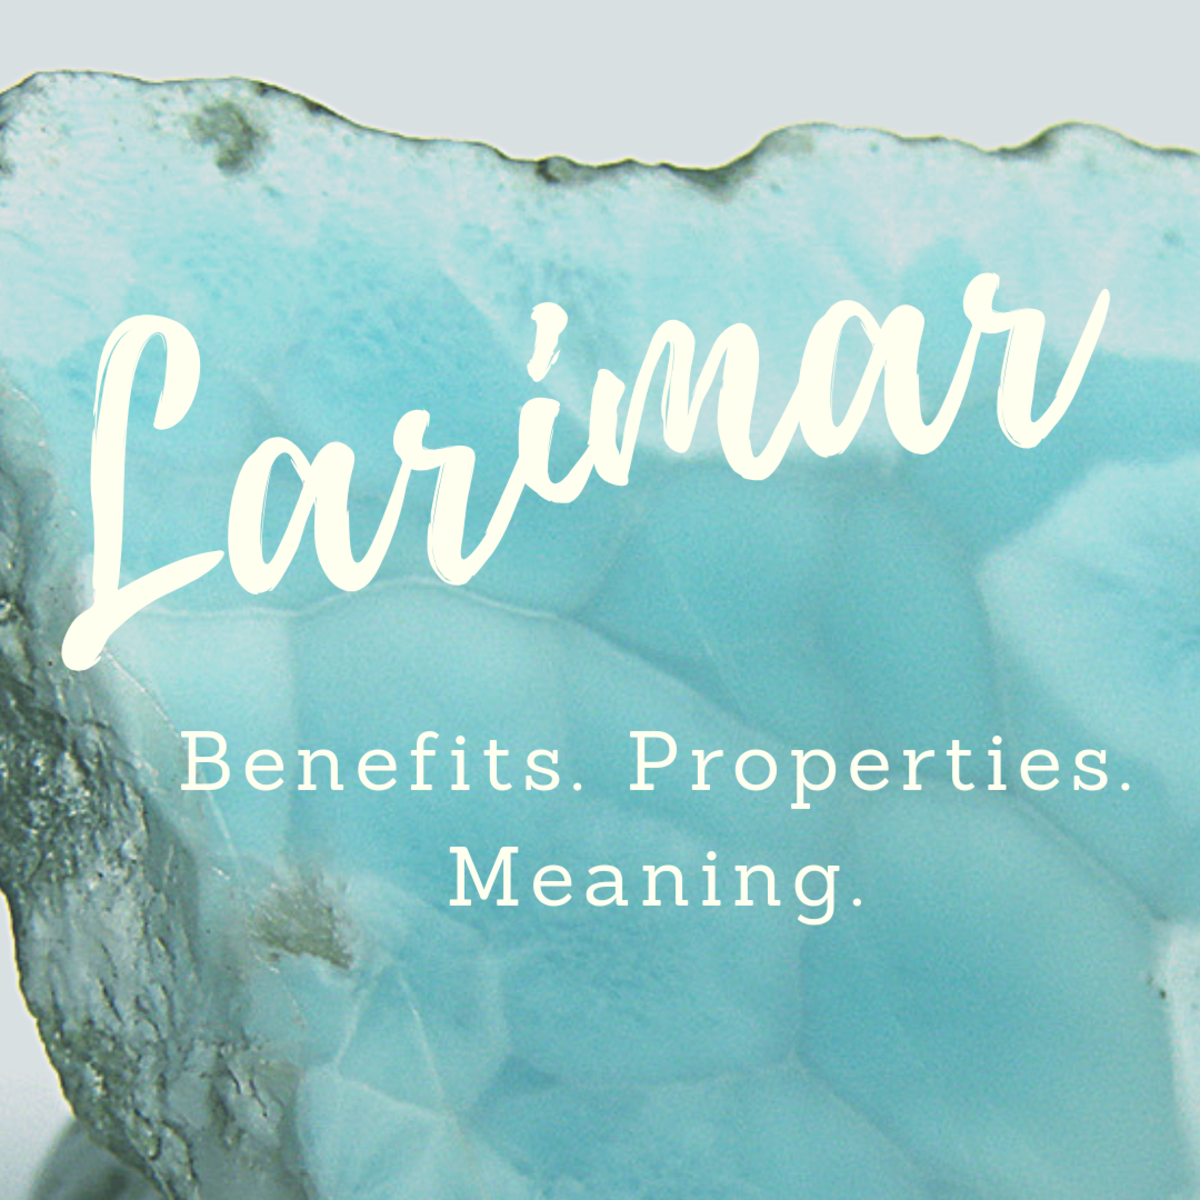 Larimar Stone Benefits, Properties, and Meaning